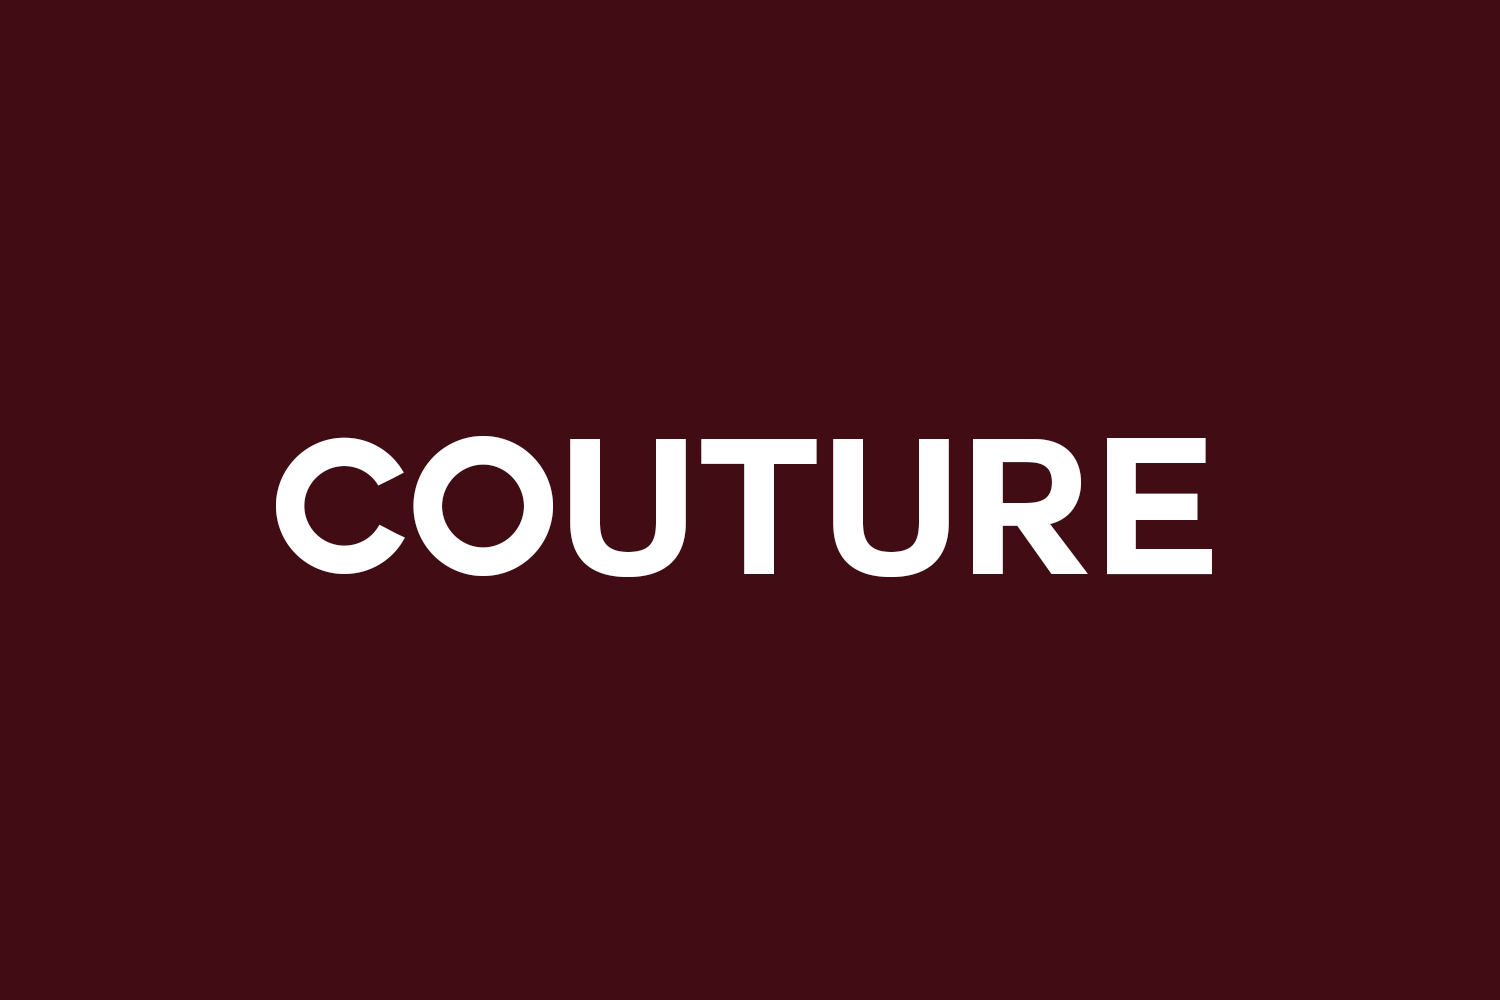 Couture Free Font